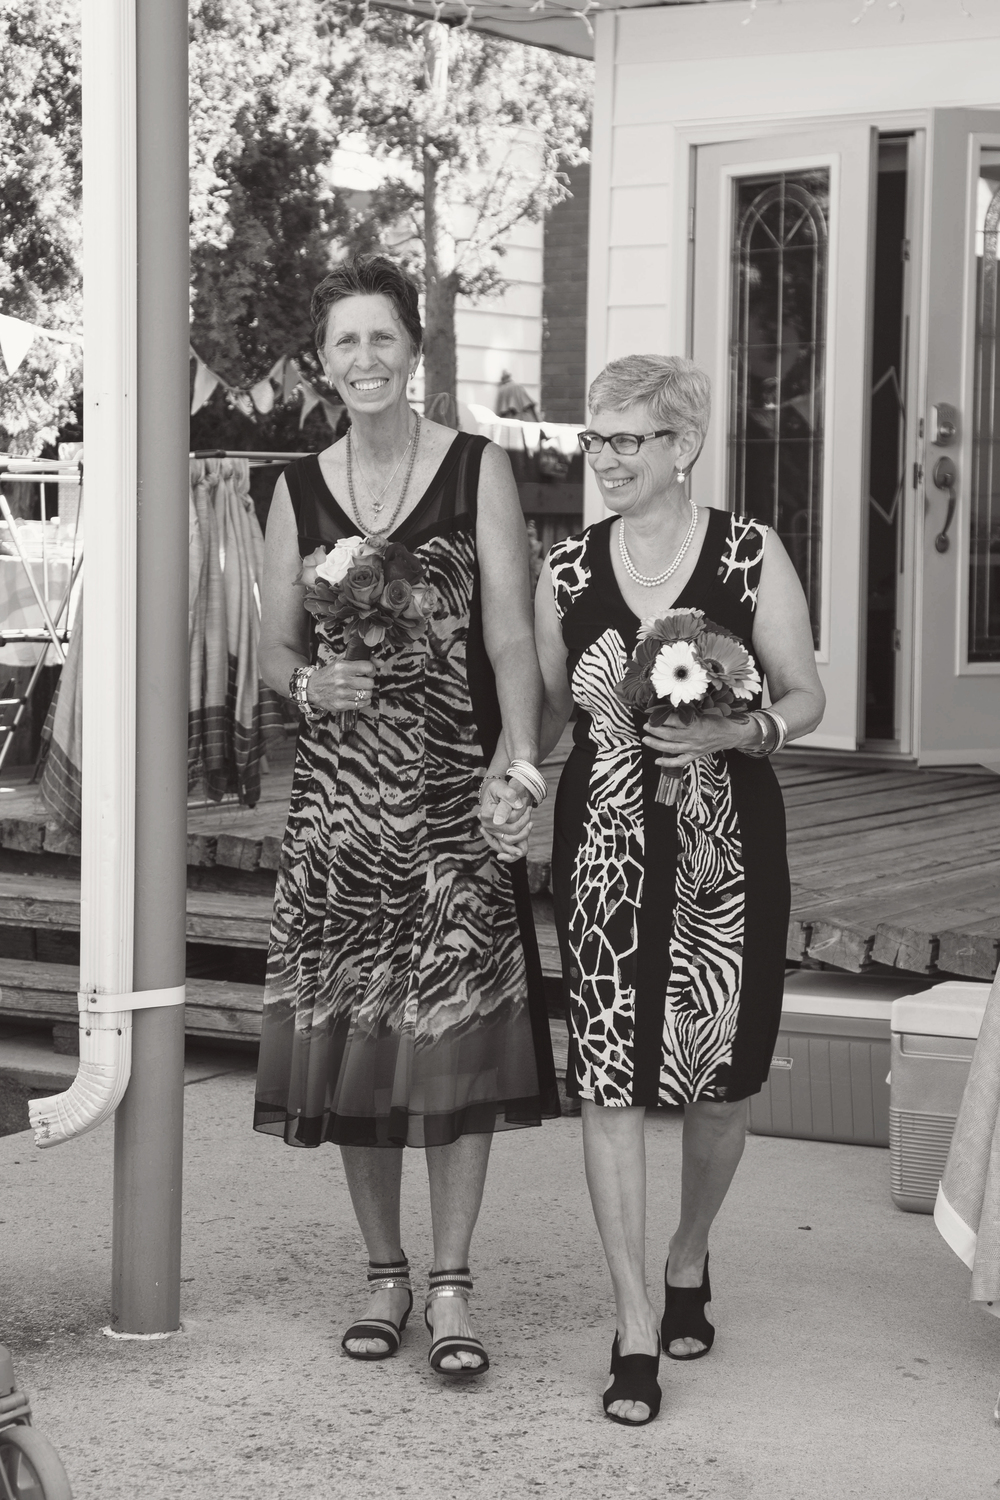 Donna-and-Sue_021_bw.jpg